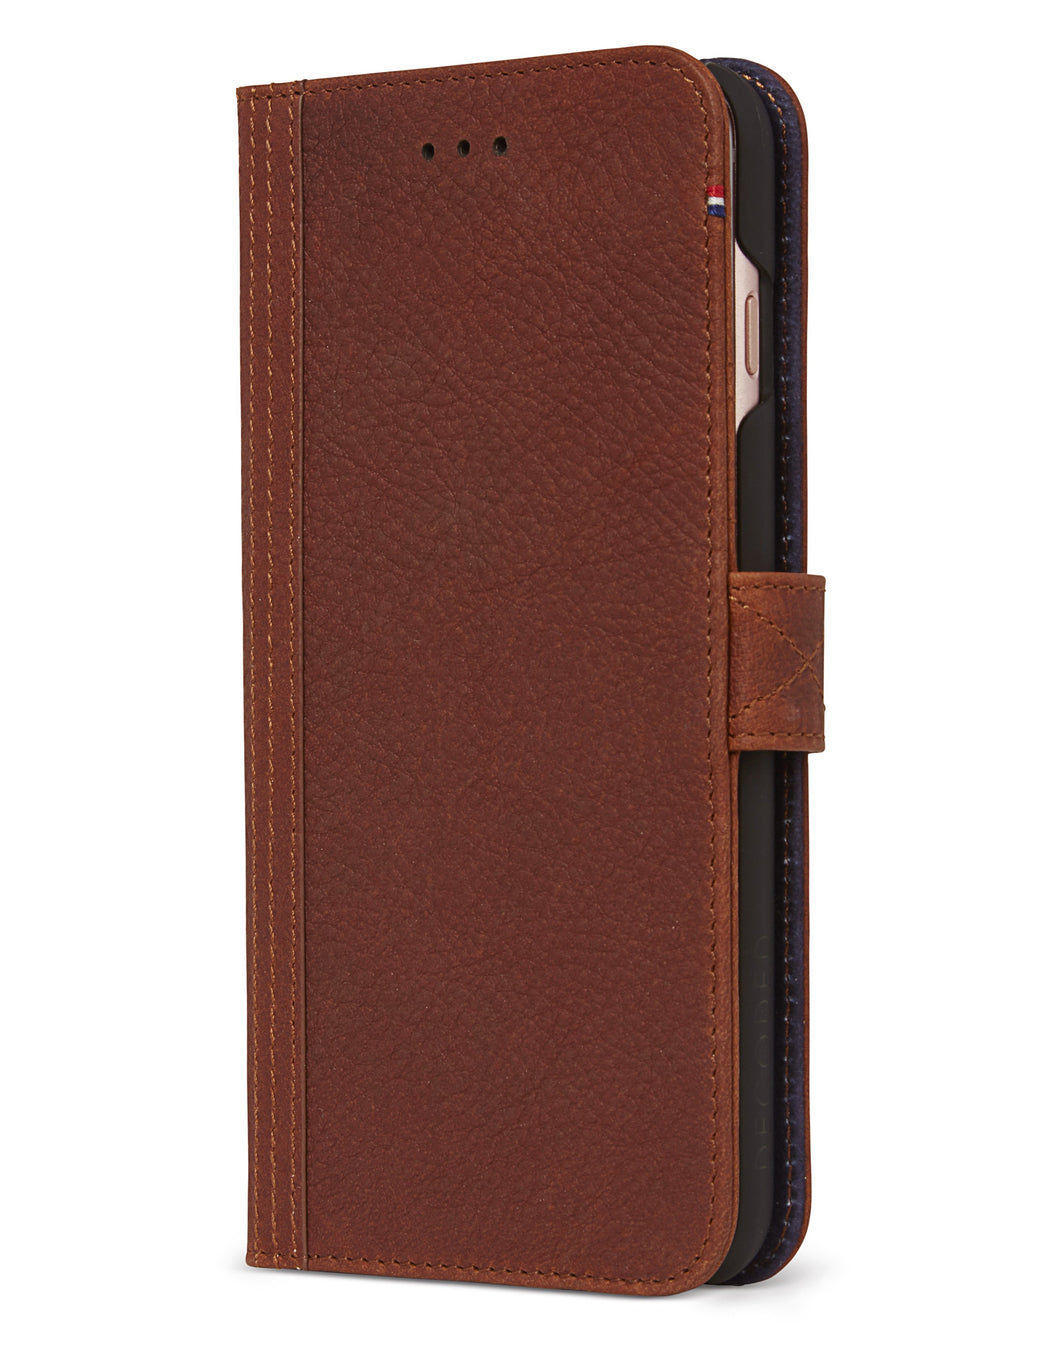 Detachable Wallet Brown - iPhone 6s / 6 Plus